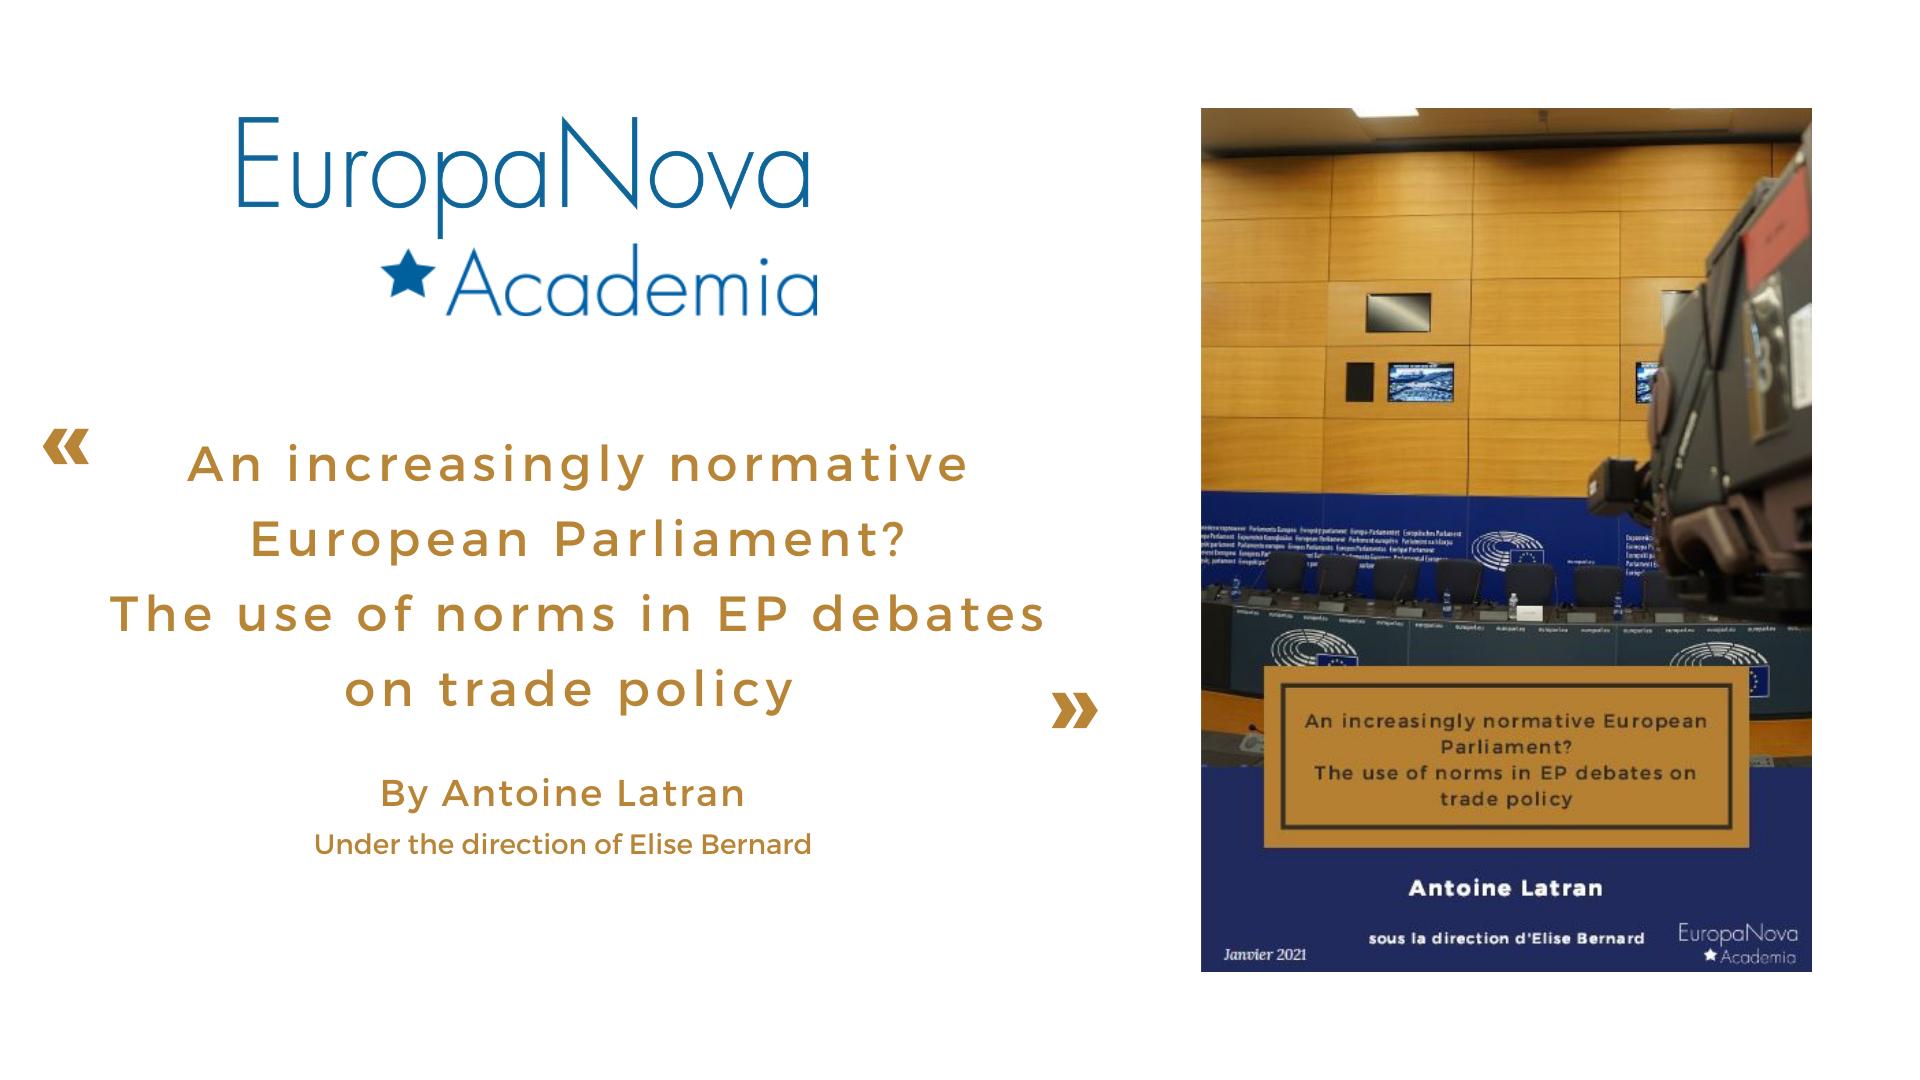 The normative role of the European Parliament in EU trade policy